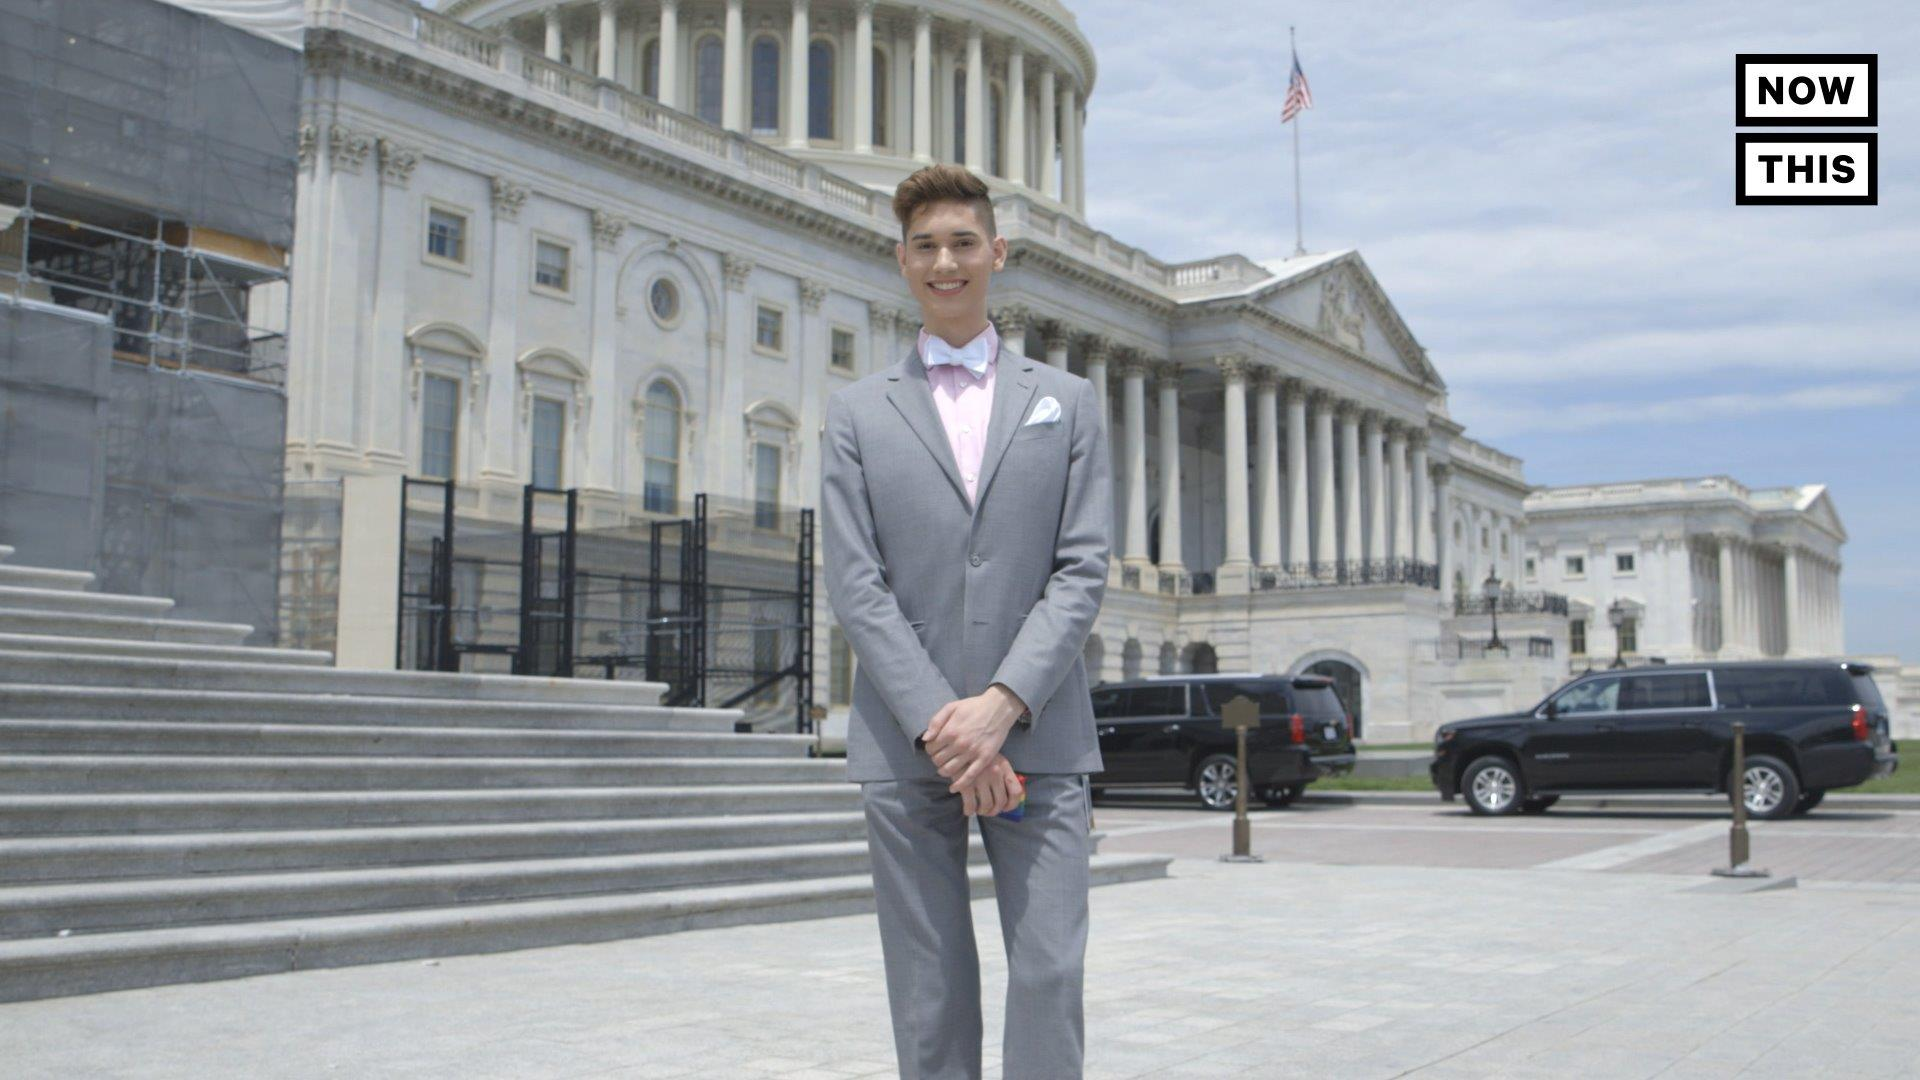 LGBTQ+ Activist and Congressional Intern Seth Owen Witnessed Passage of Historic Equality Act